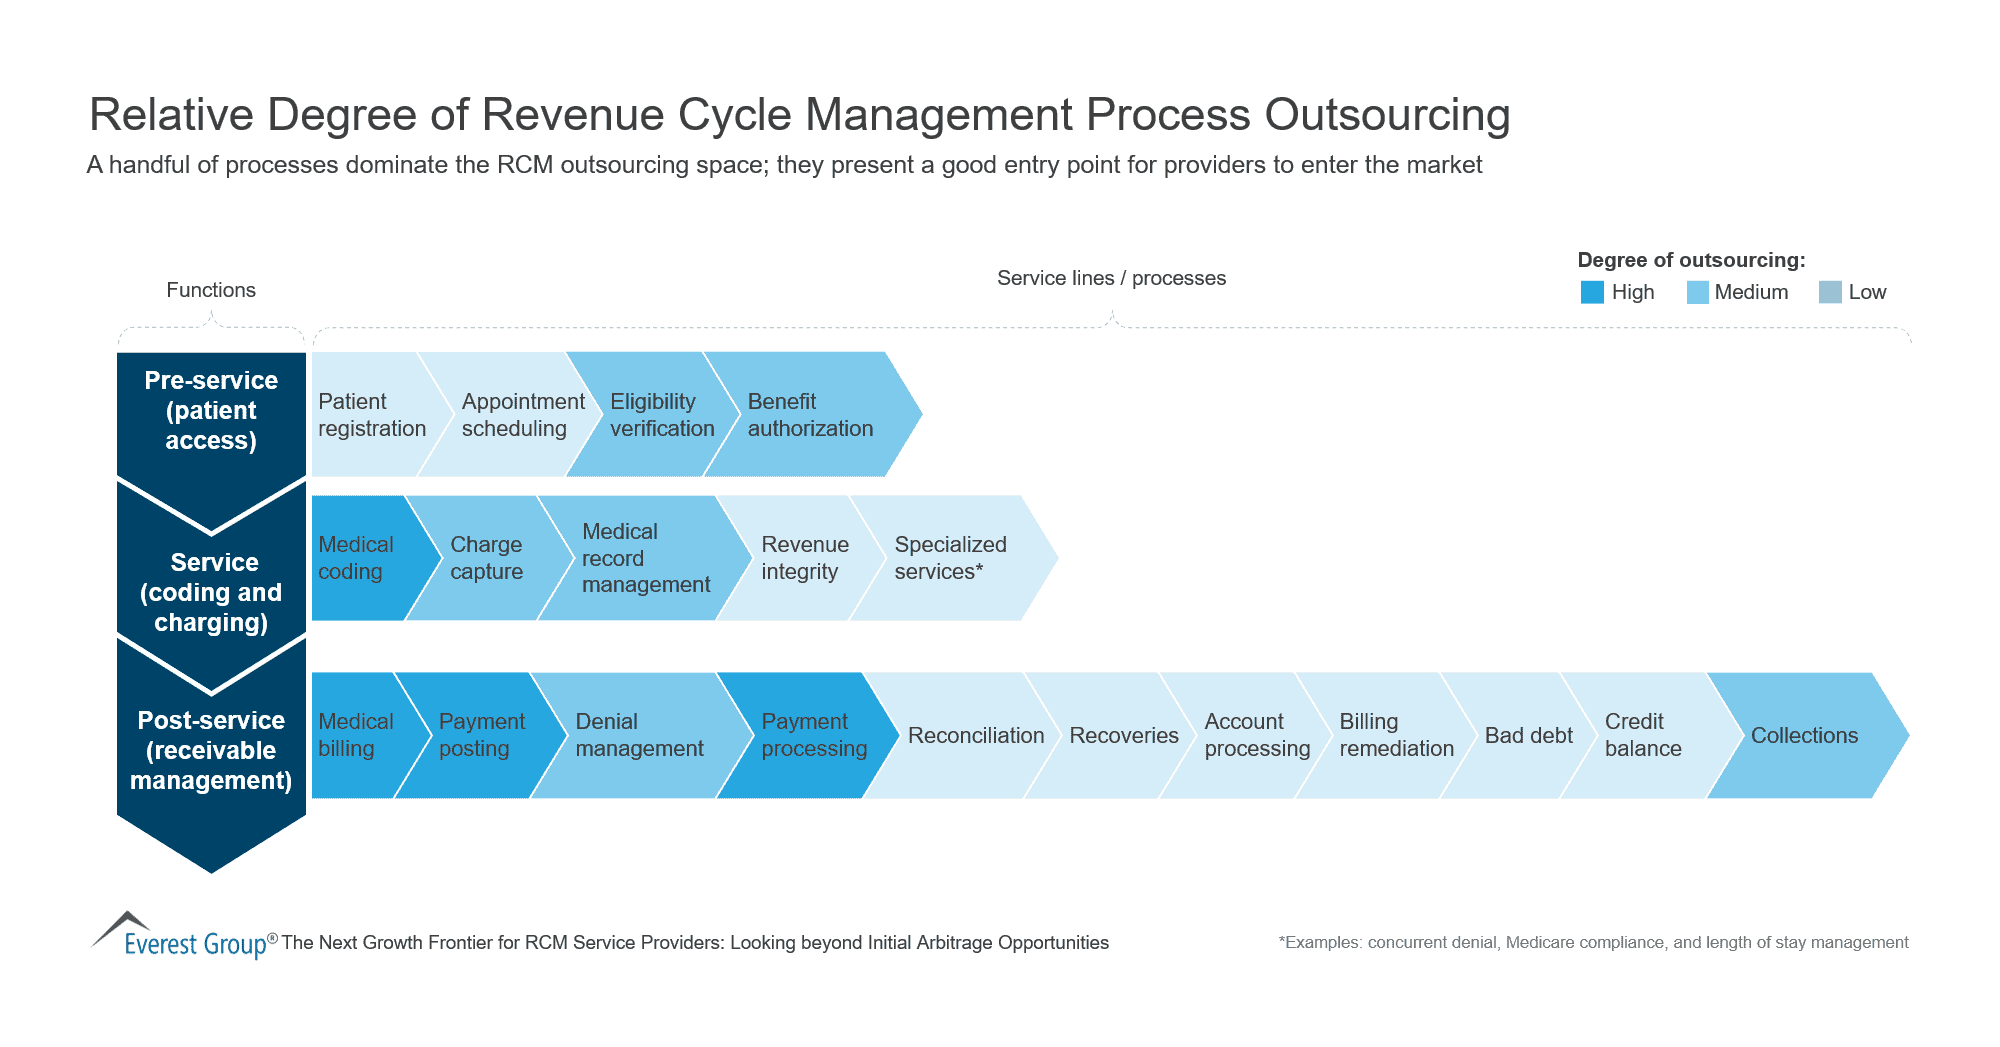 Relative Degree of Revenue Cycle Management Process Outsourcing